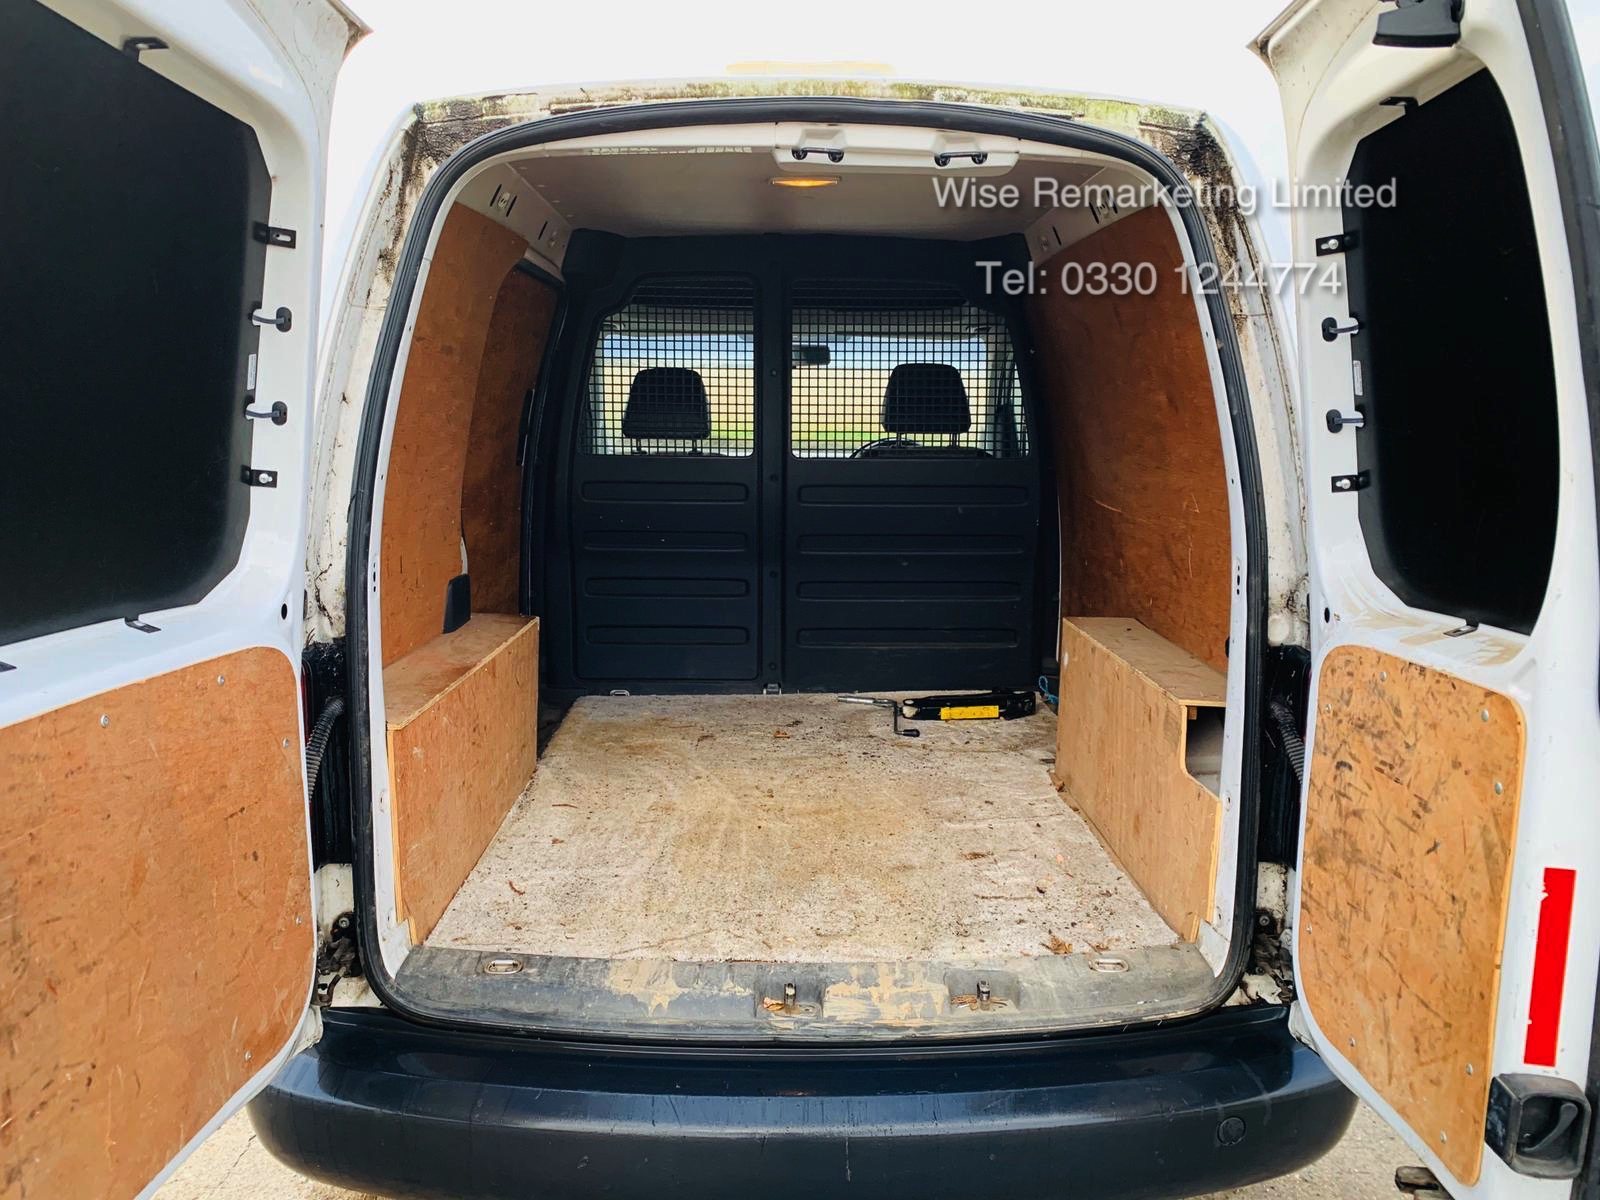 Volkswagen Caddy C20 1.6 TDI - 2012 Model - 1 Keeper From New - Side Loading Door - Ply Lined - Image 10 of 16